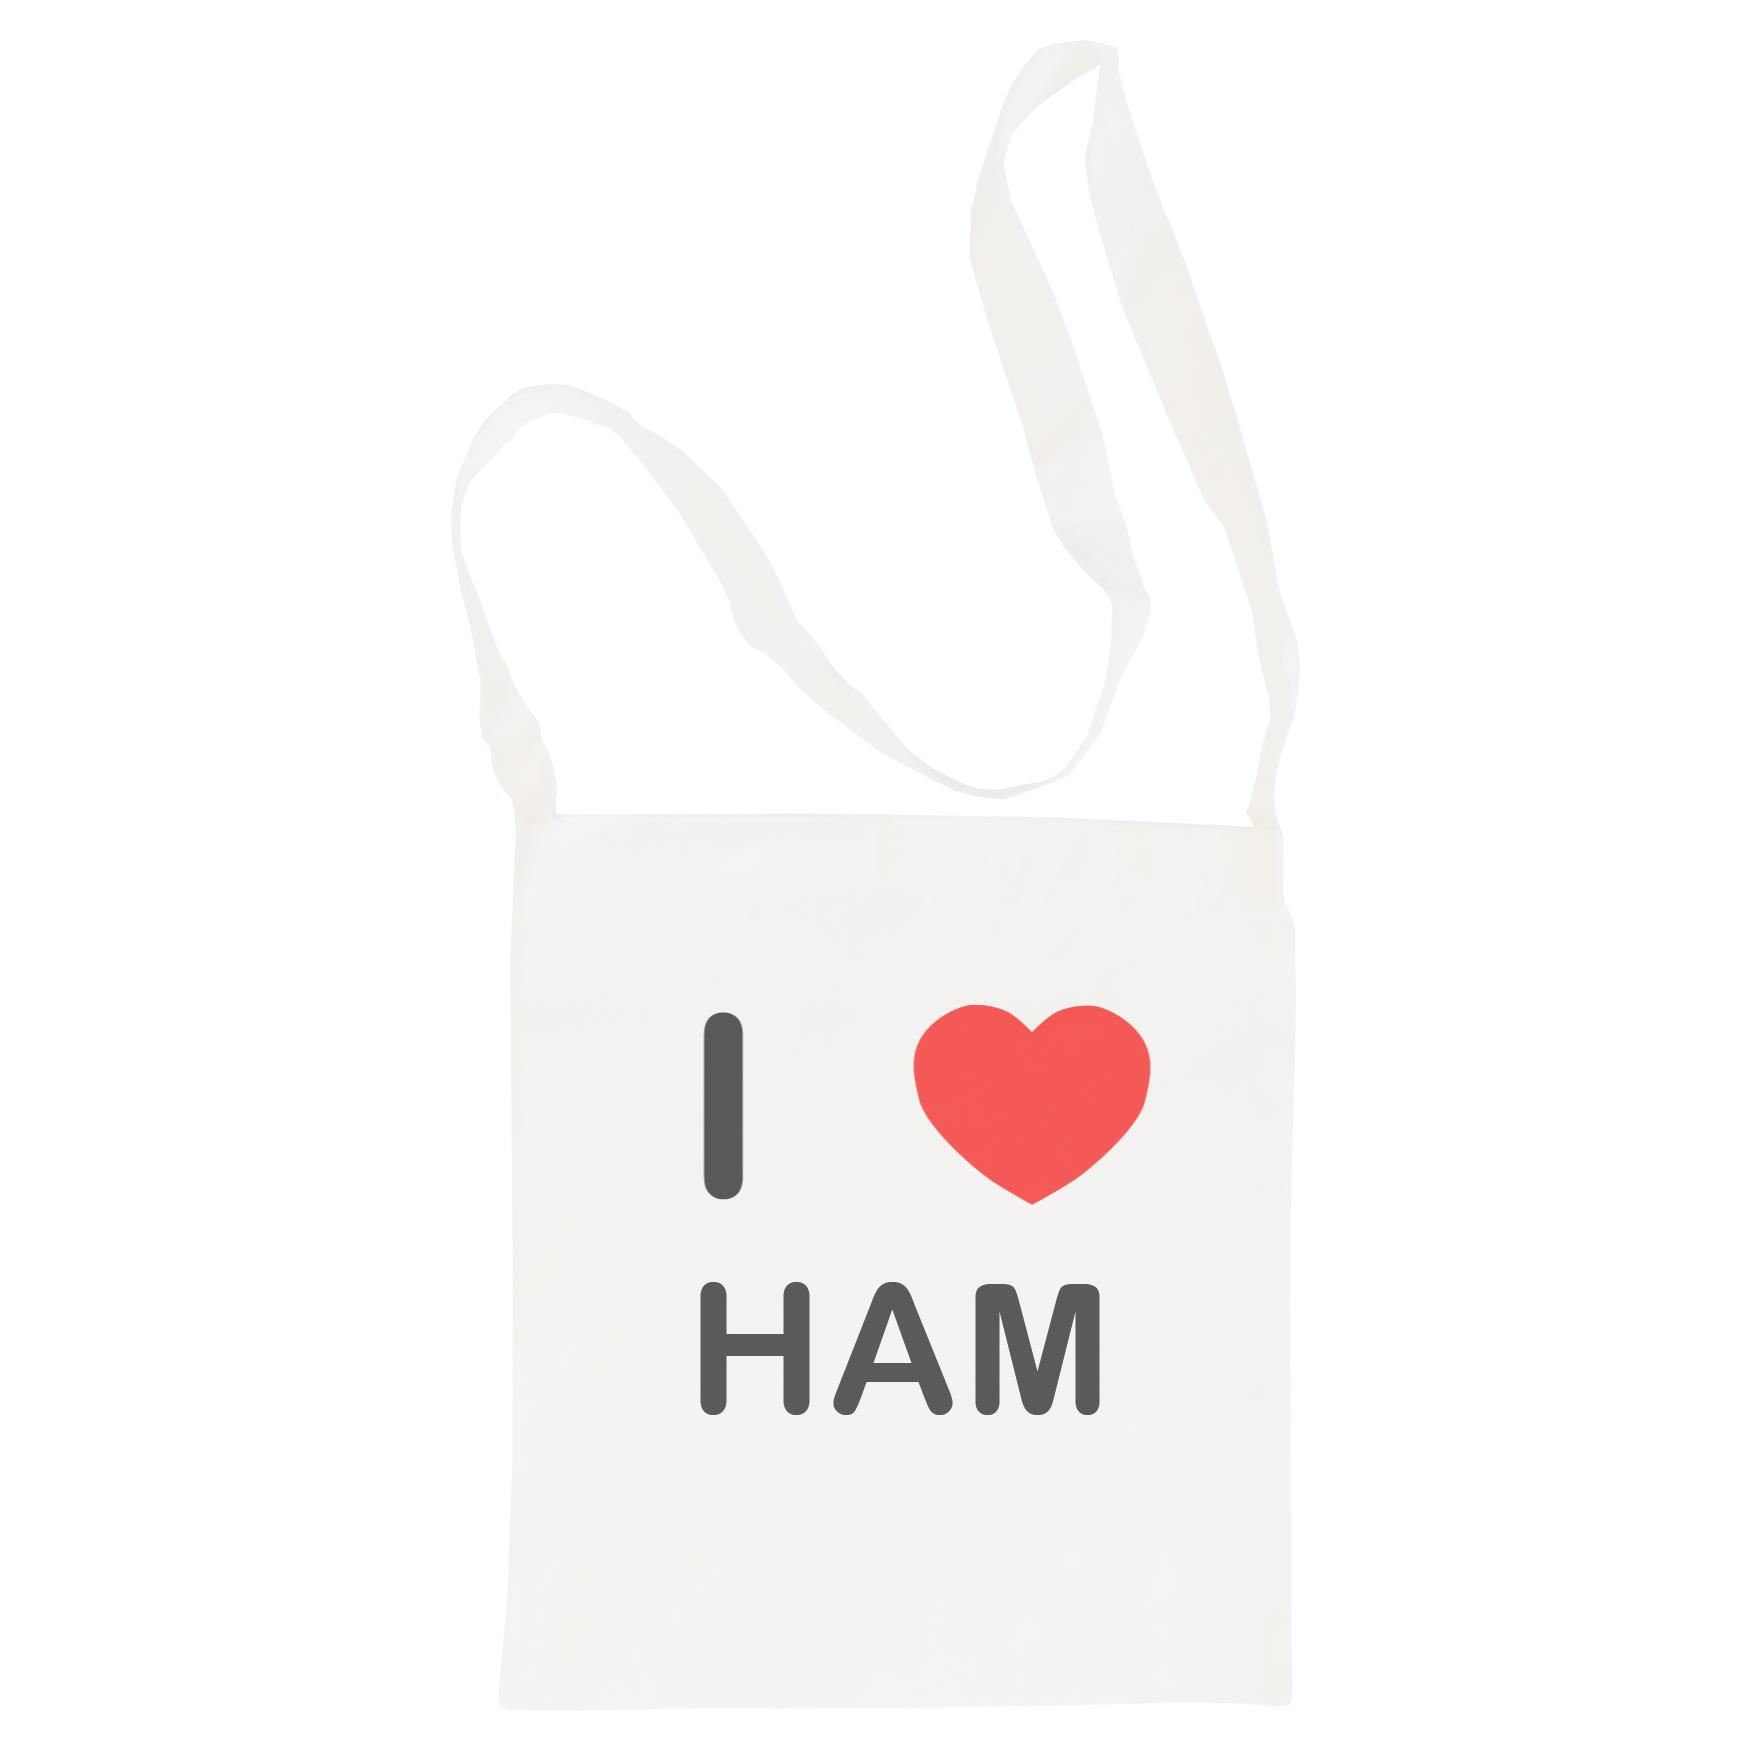 I Love Ham - Cotton Bag | Size choice Tote, Shopper or Sling